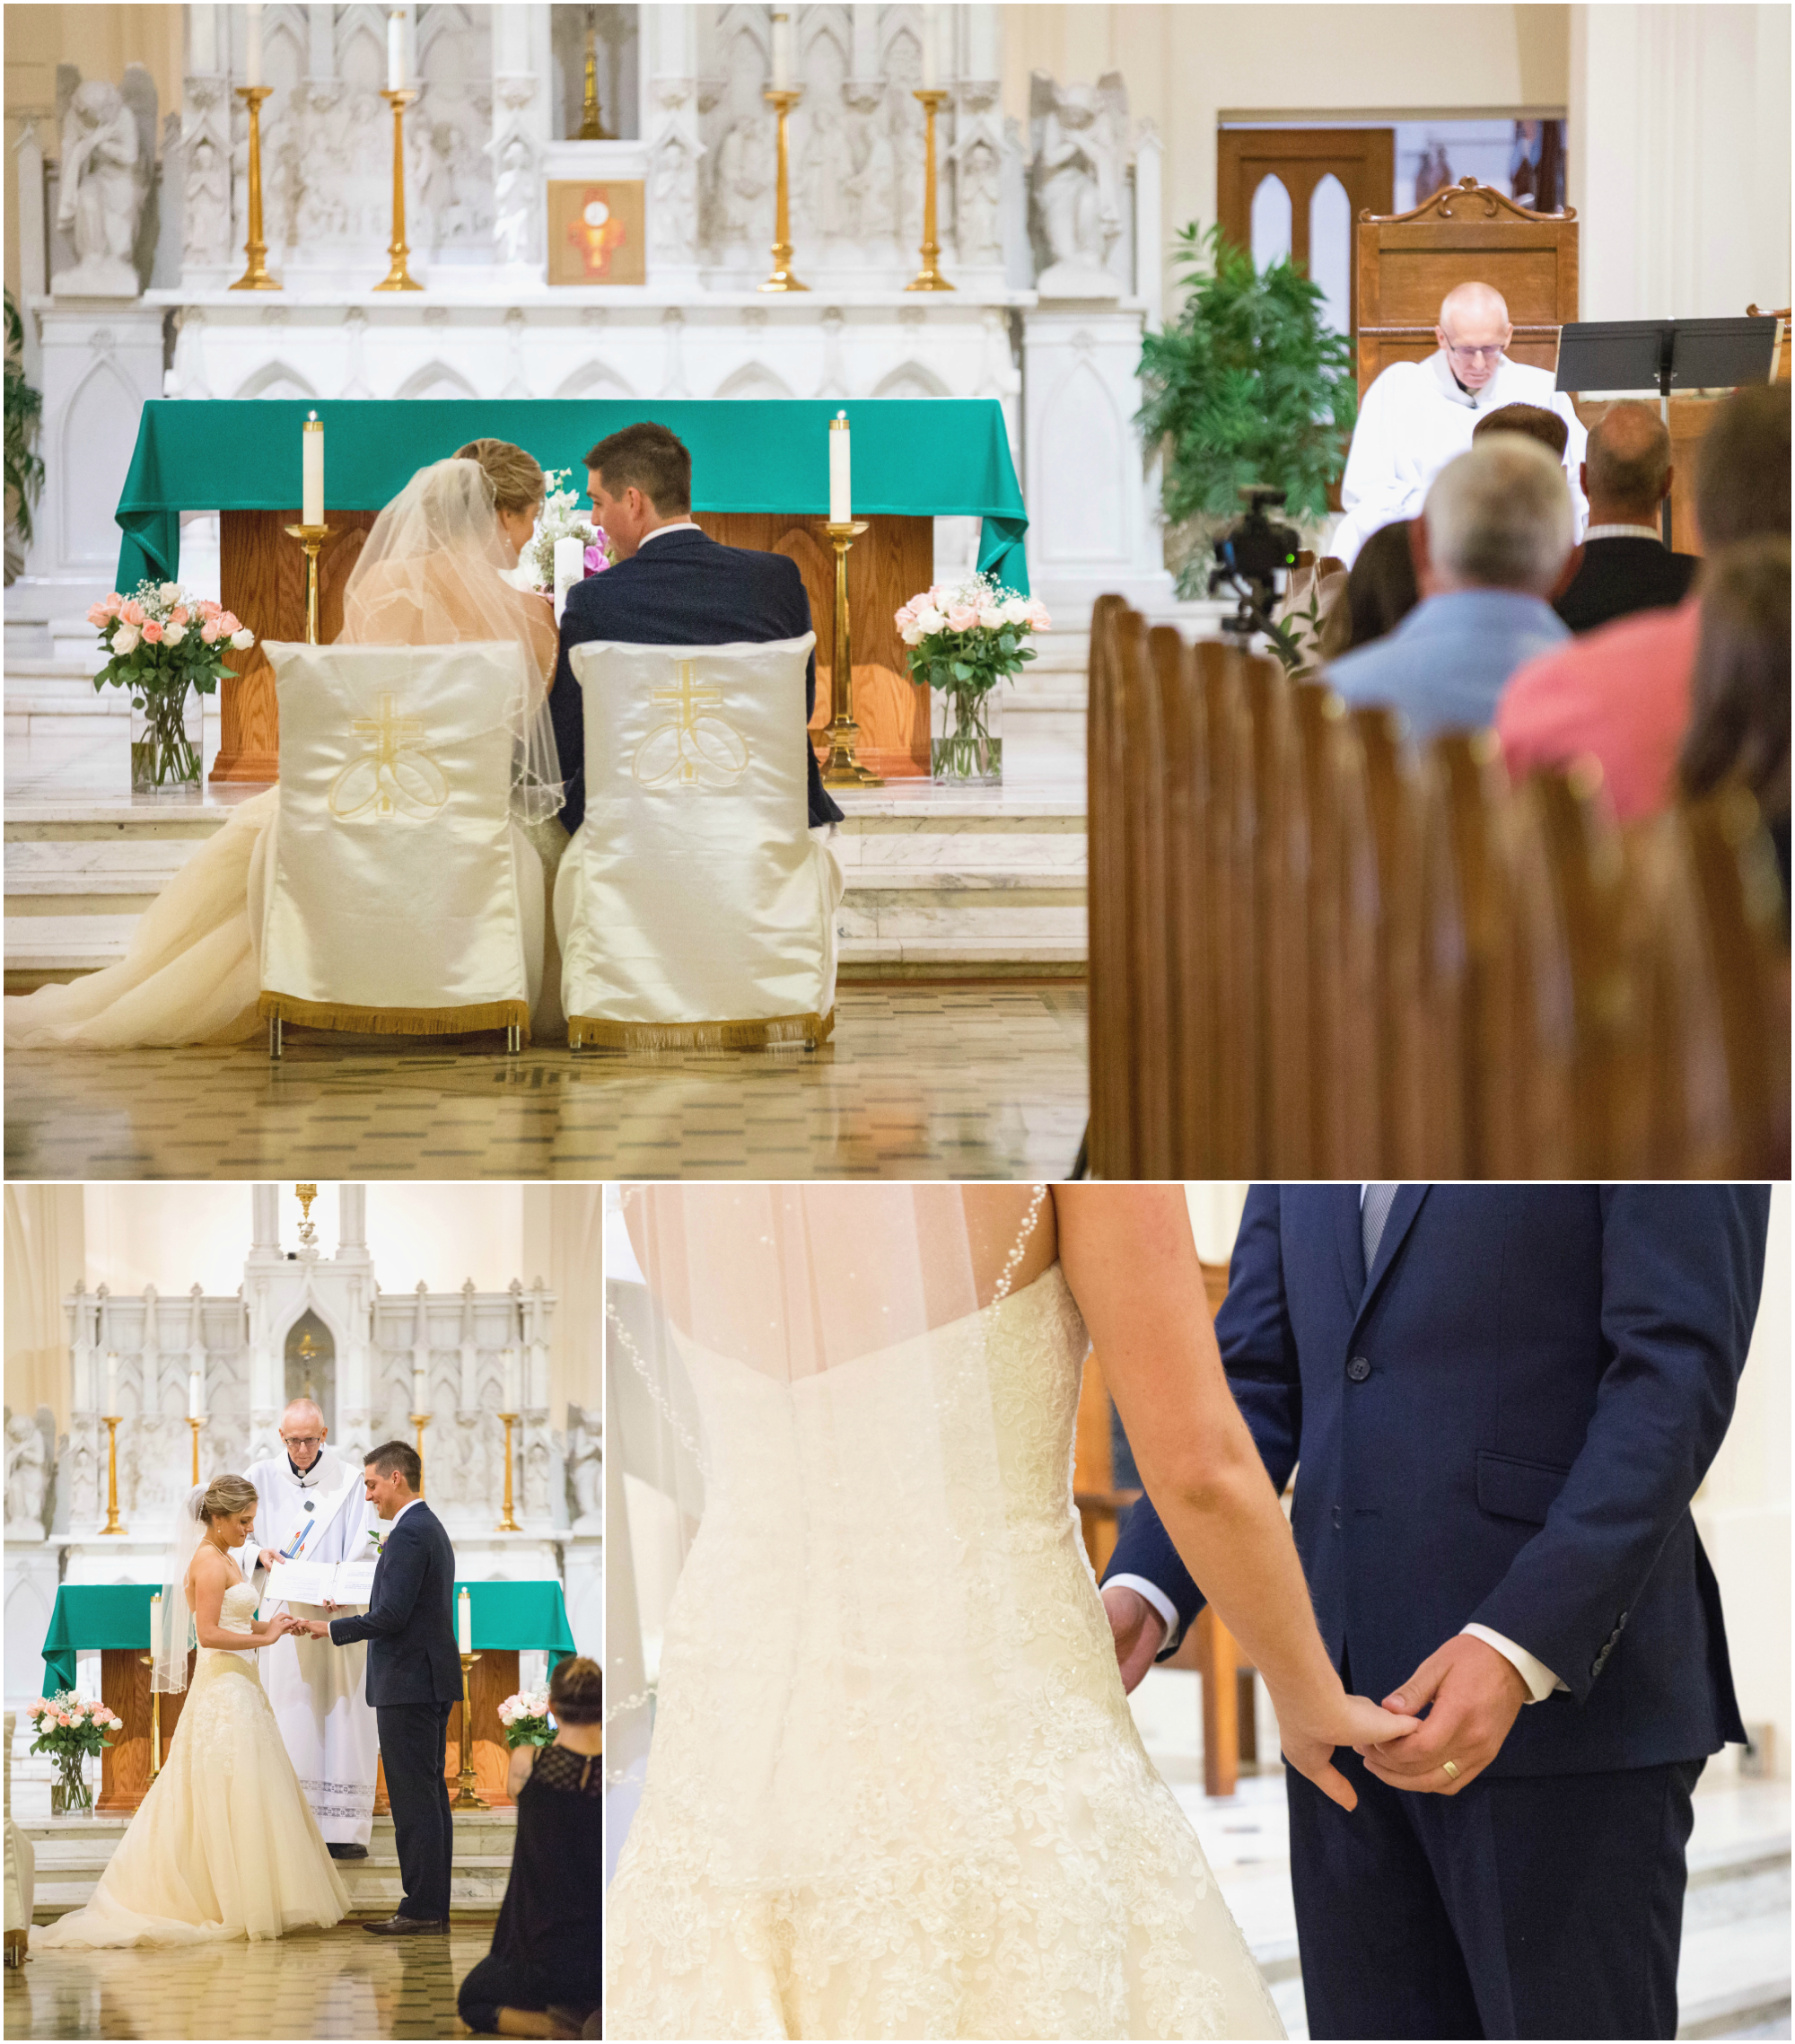 st_patricks_church_wedding_06.png